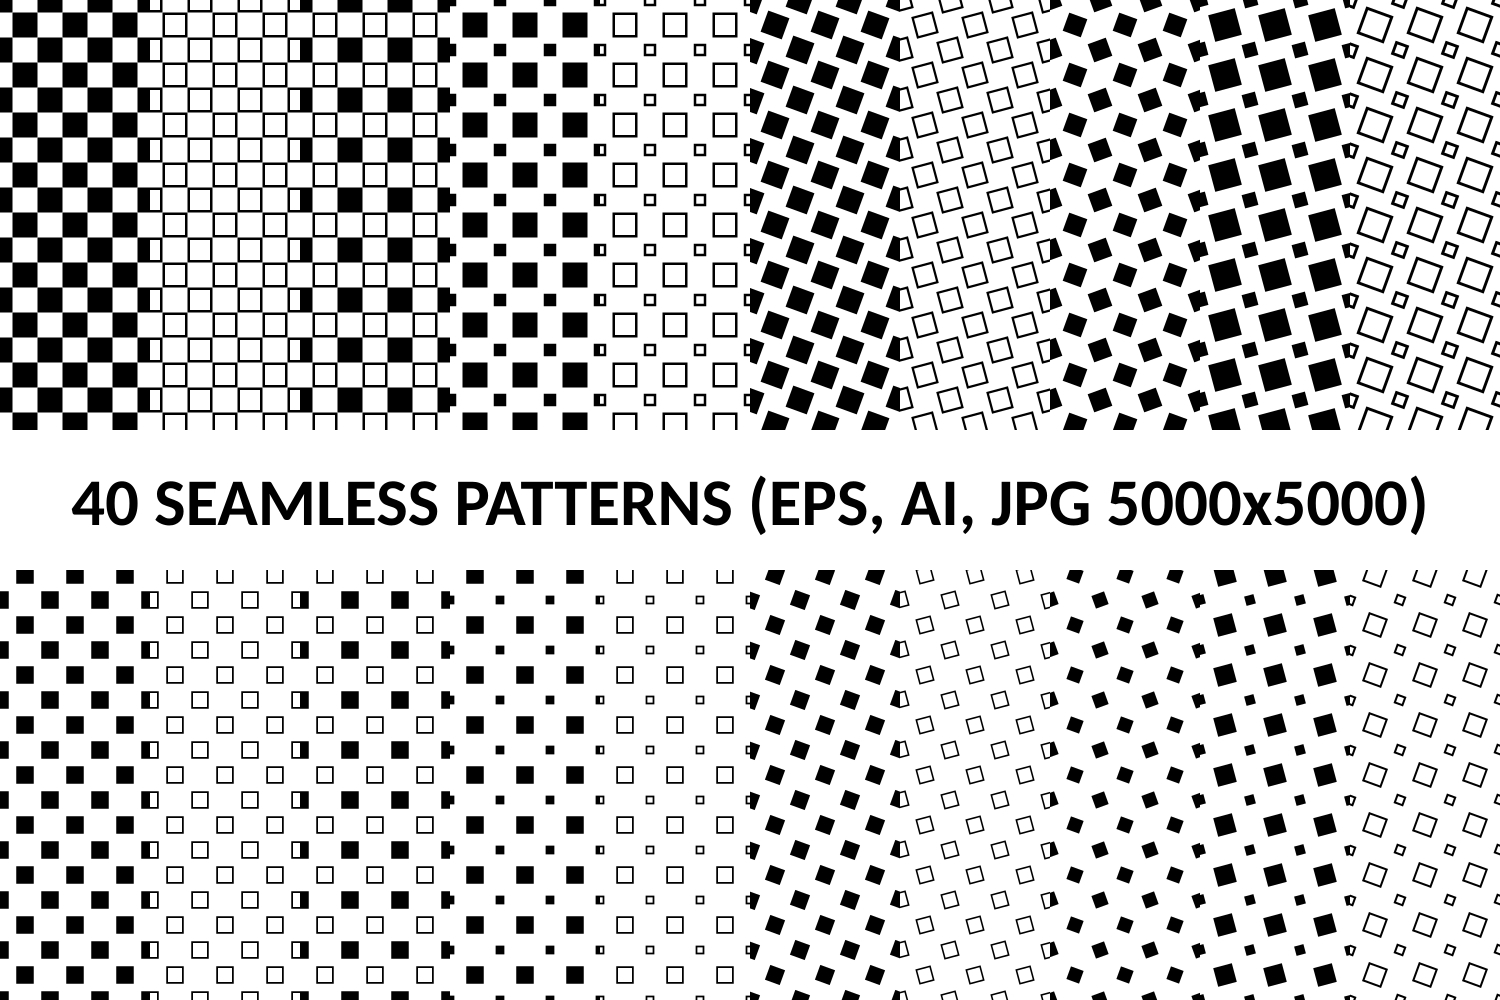 40 Seamless Square Patterns (AI, EPS, JPG 5000x5000) example image 1